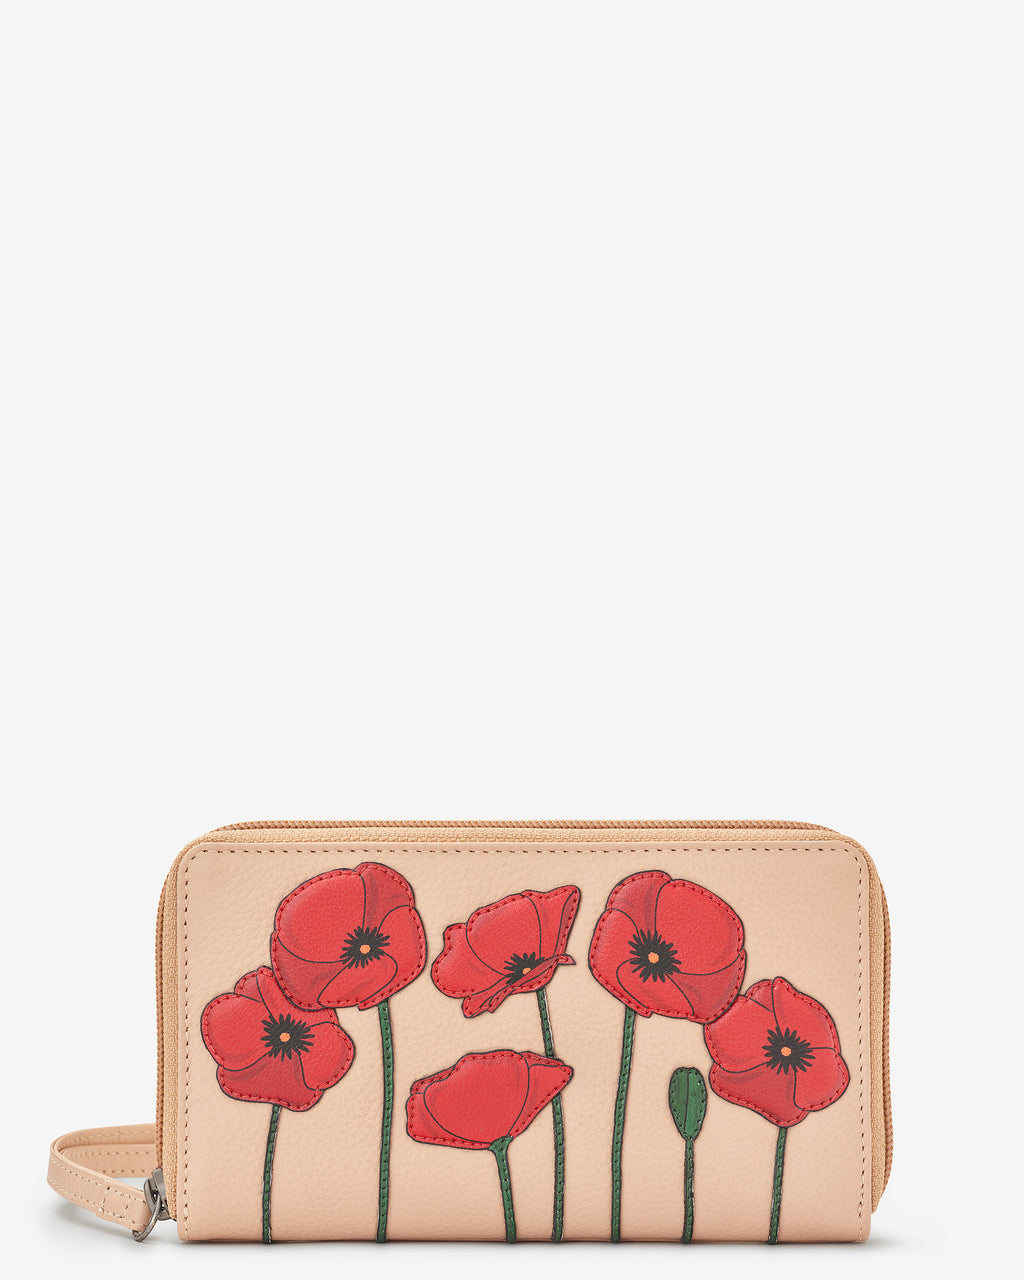 Poppy Flower Zip Round Leather Purse With Strap